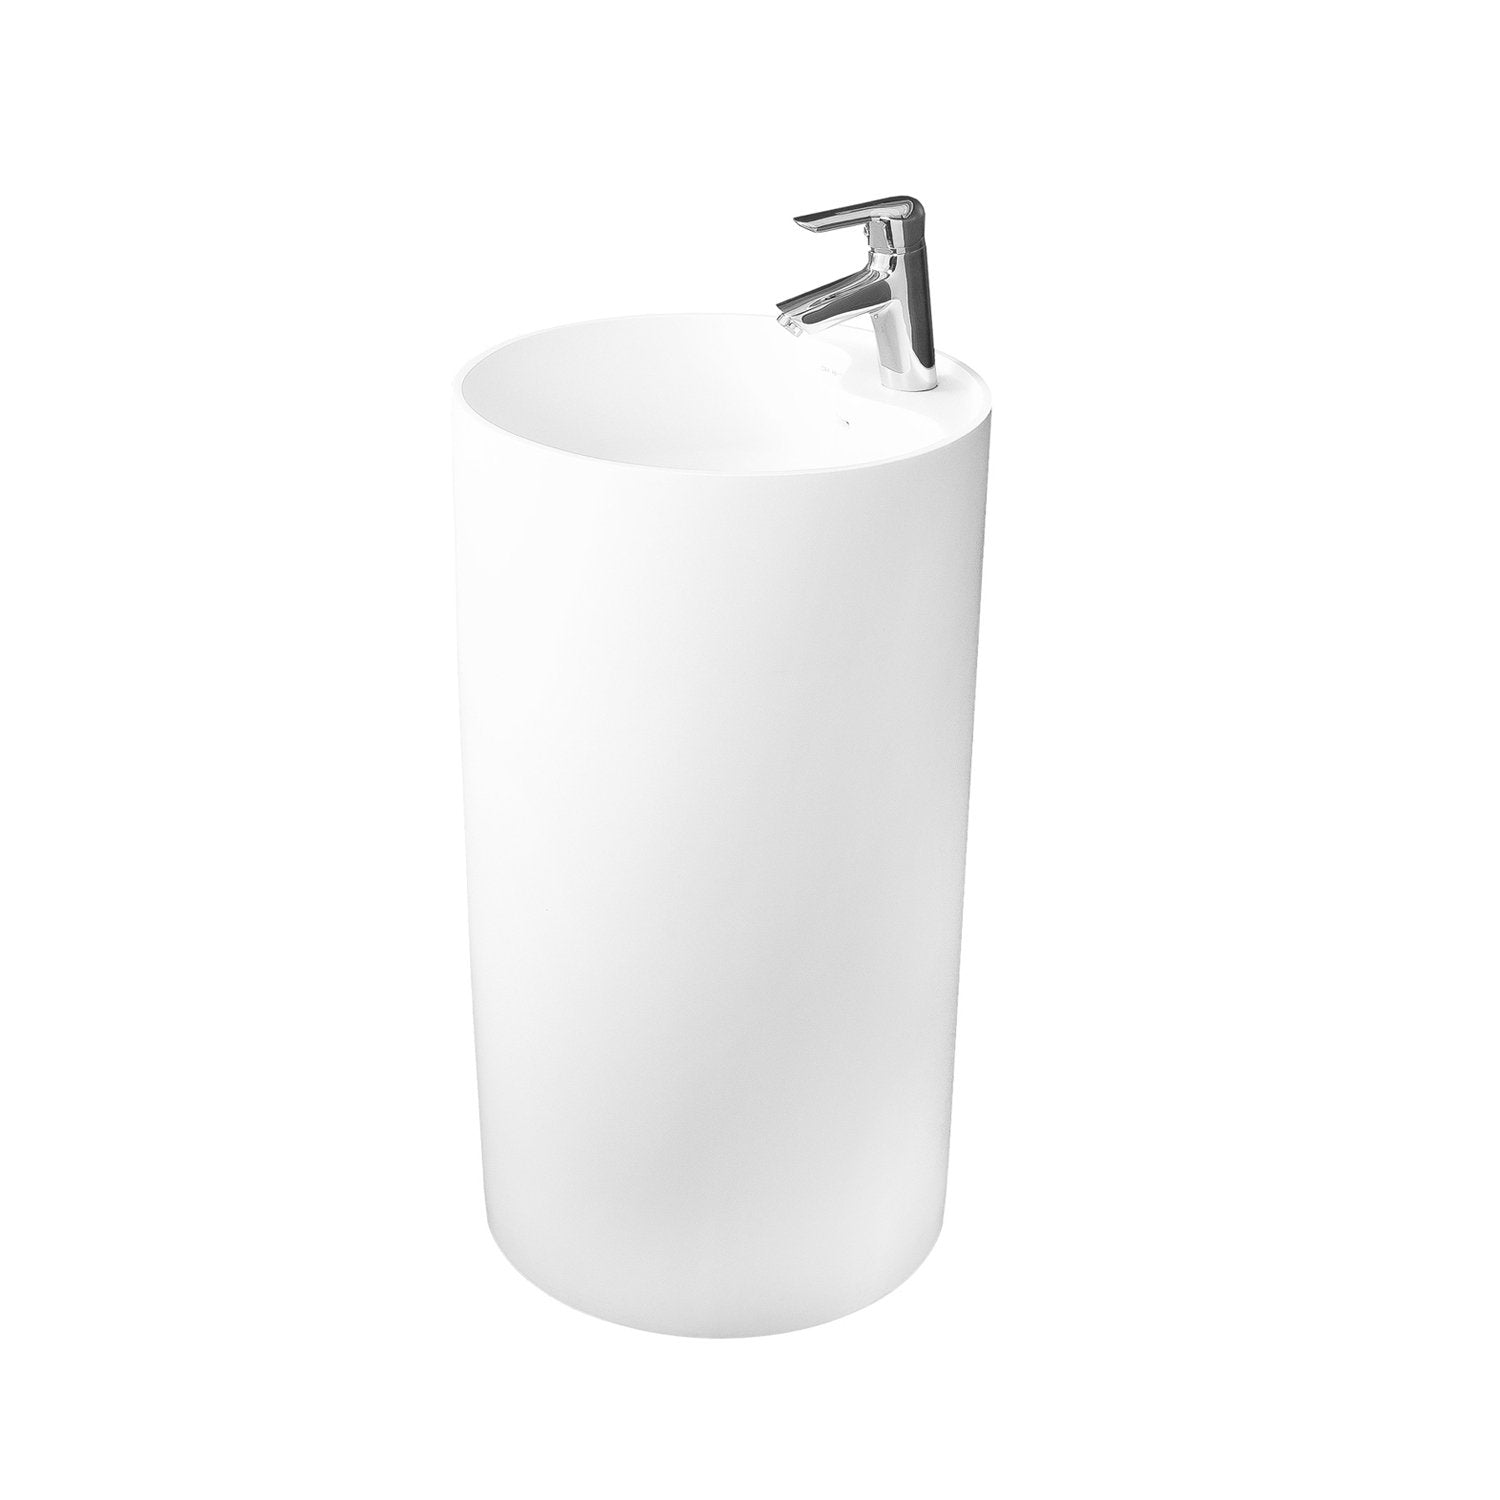 DAX Solid Surface Round Pedestal Freestanding Bathroom Sink, White Matte Finish, 17-1/2 x 17-1/2 x 31-1/2 Inches (DAX-AB-1380)